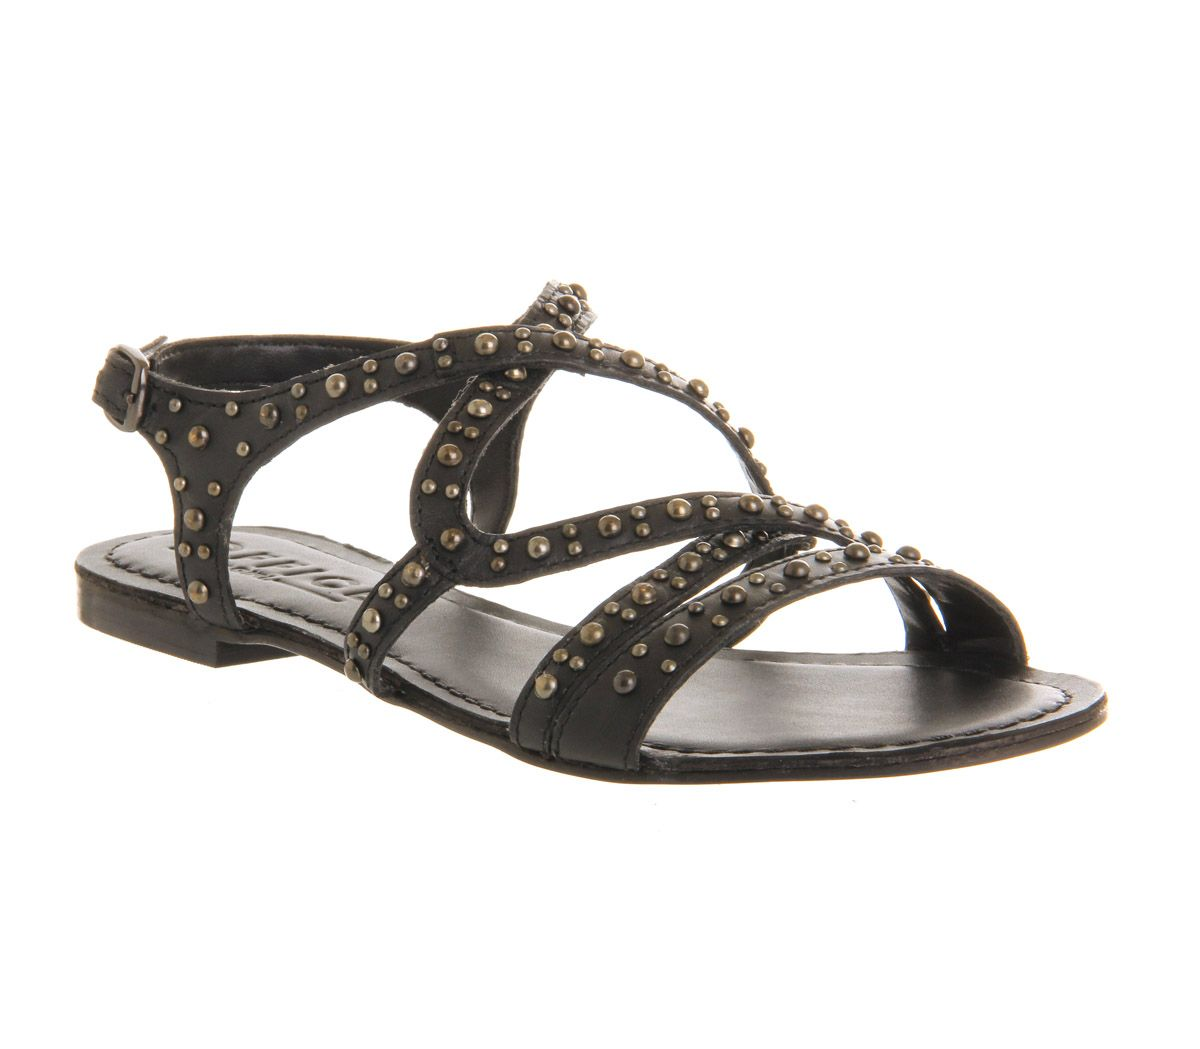 Hypnotise stud leather open toe flat sandals